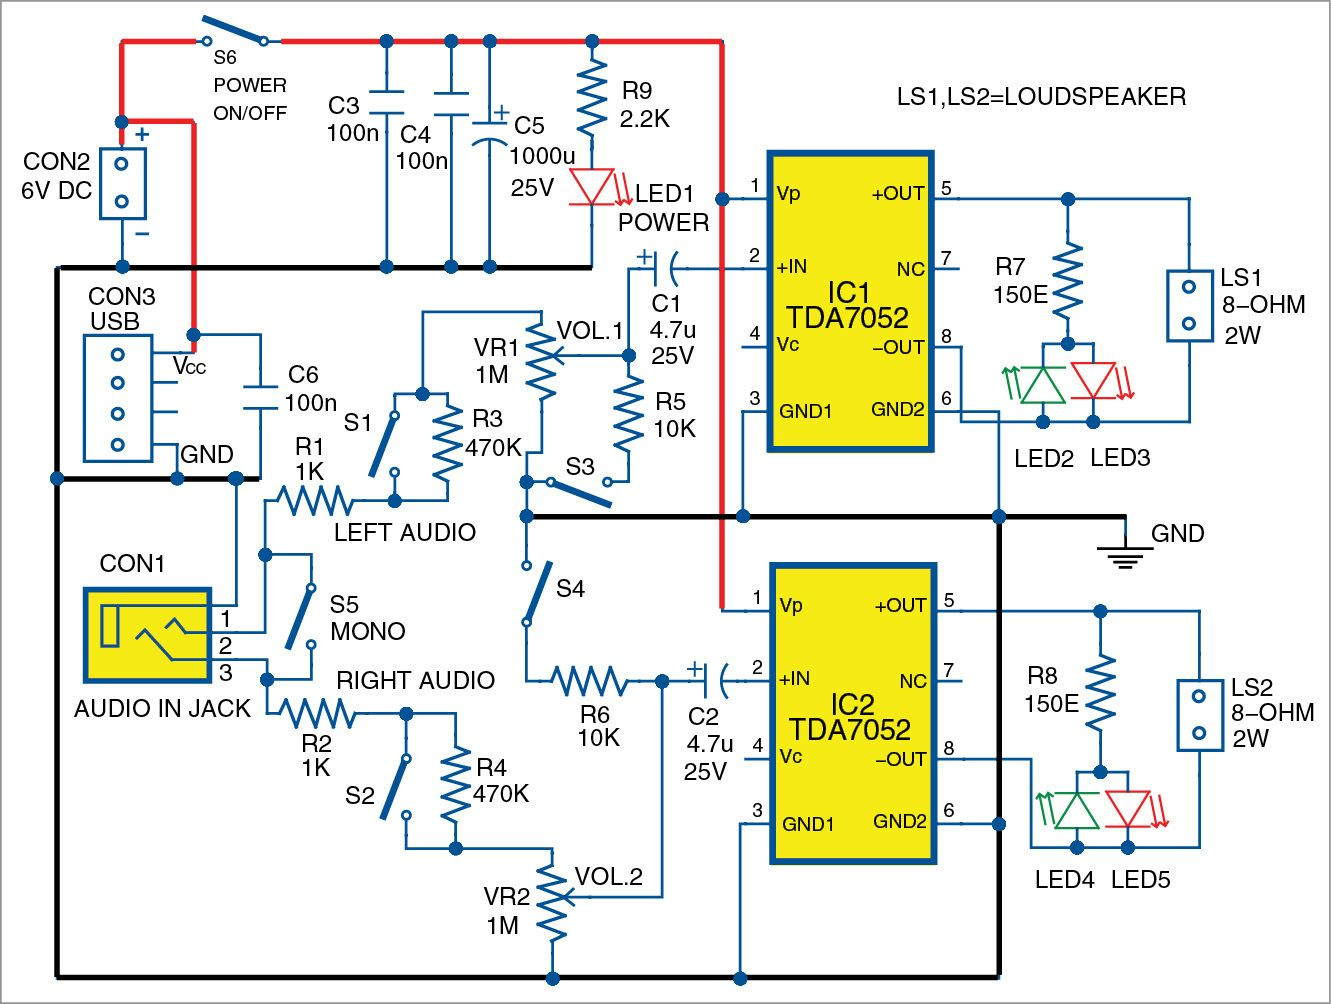 Intercom Circuit Schematic Devreler T Circuits With Transistors Simple Collection Tda7052 Is A 12w Mono Audio Power Amplifier Suitable For Stereo It Has Diagram Of Laser Alarm Using Transistor By Robotics Love